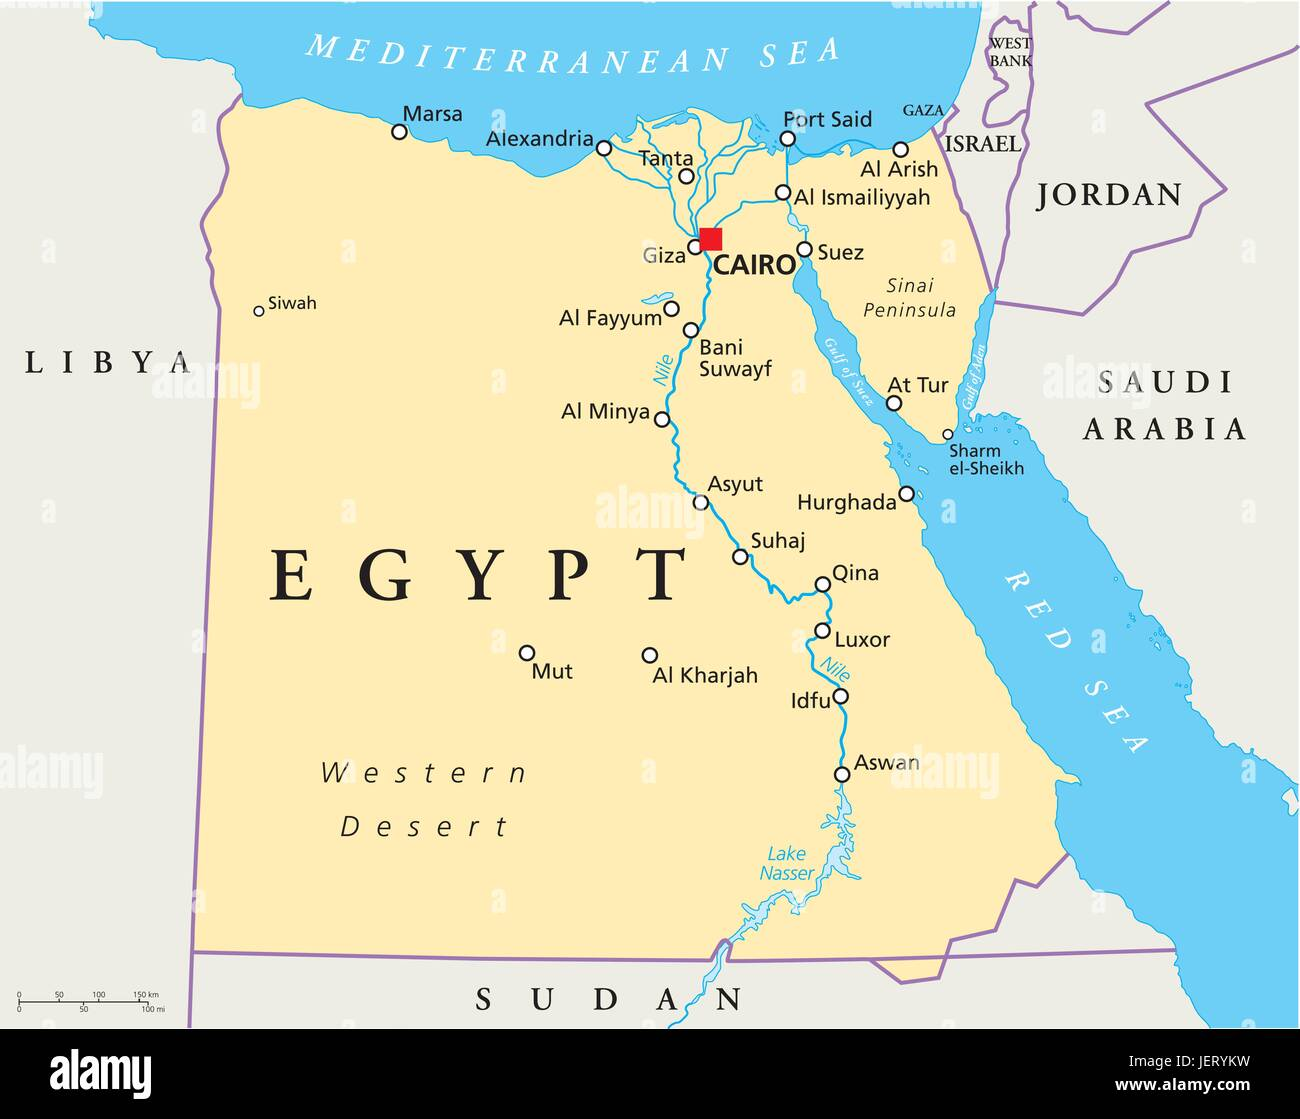 Nile River Map Stock Photos & Nile River Map Stock Images   Alamy